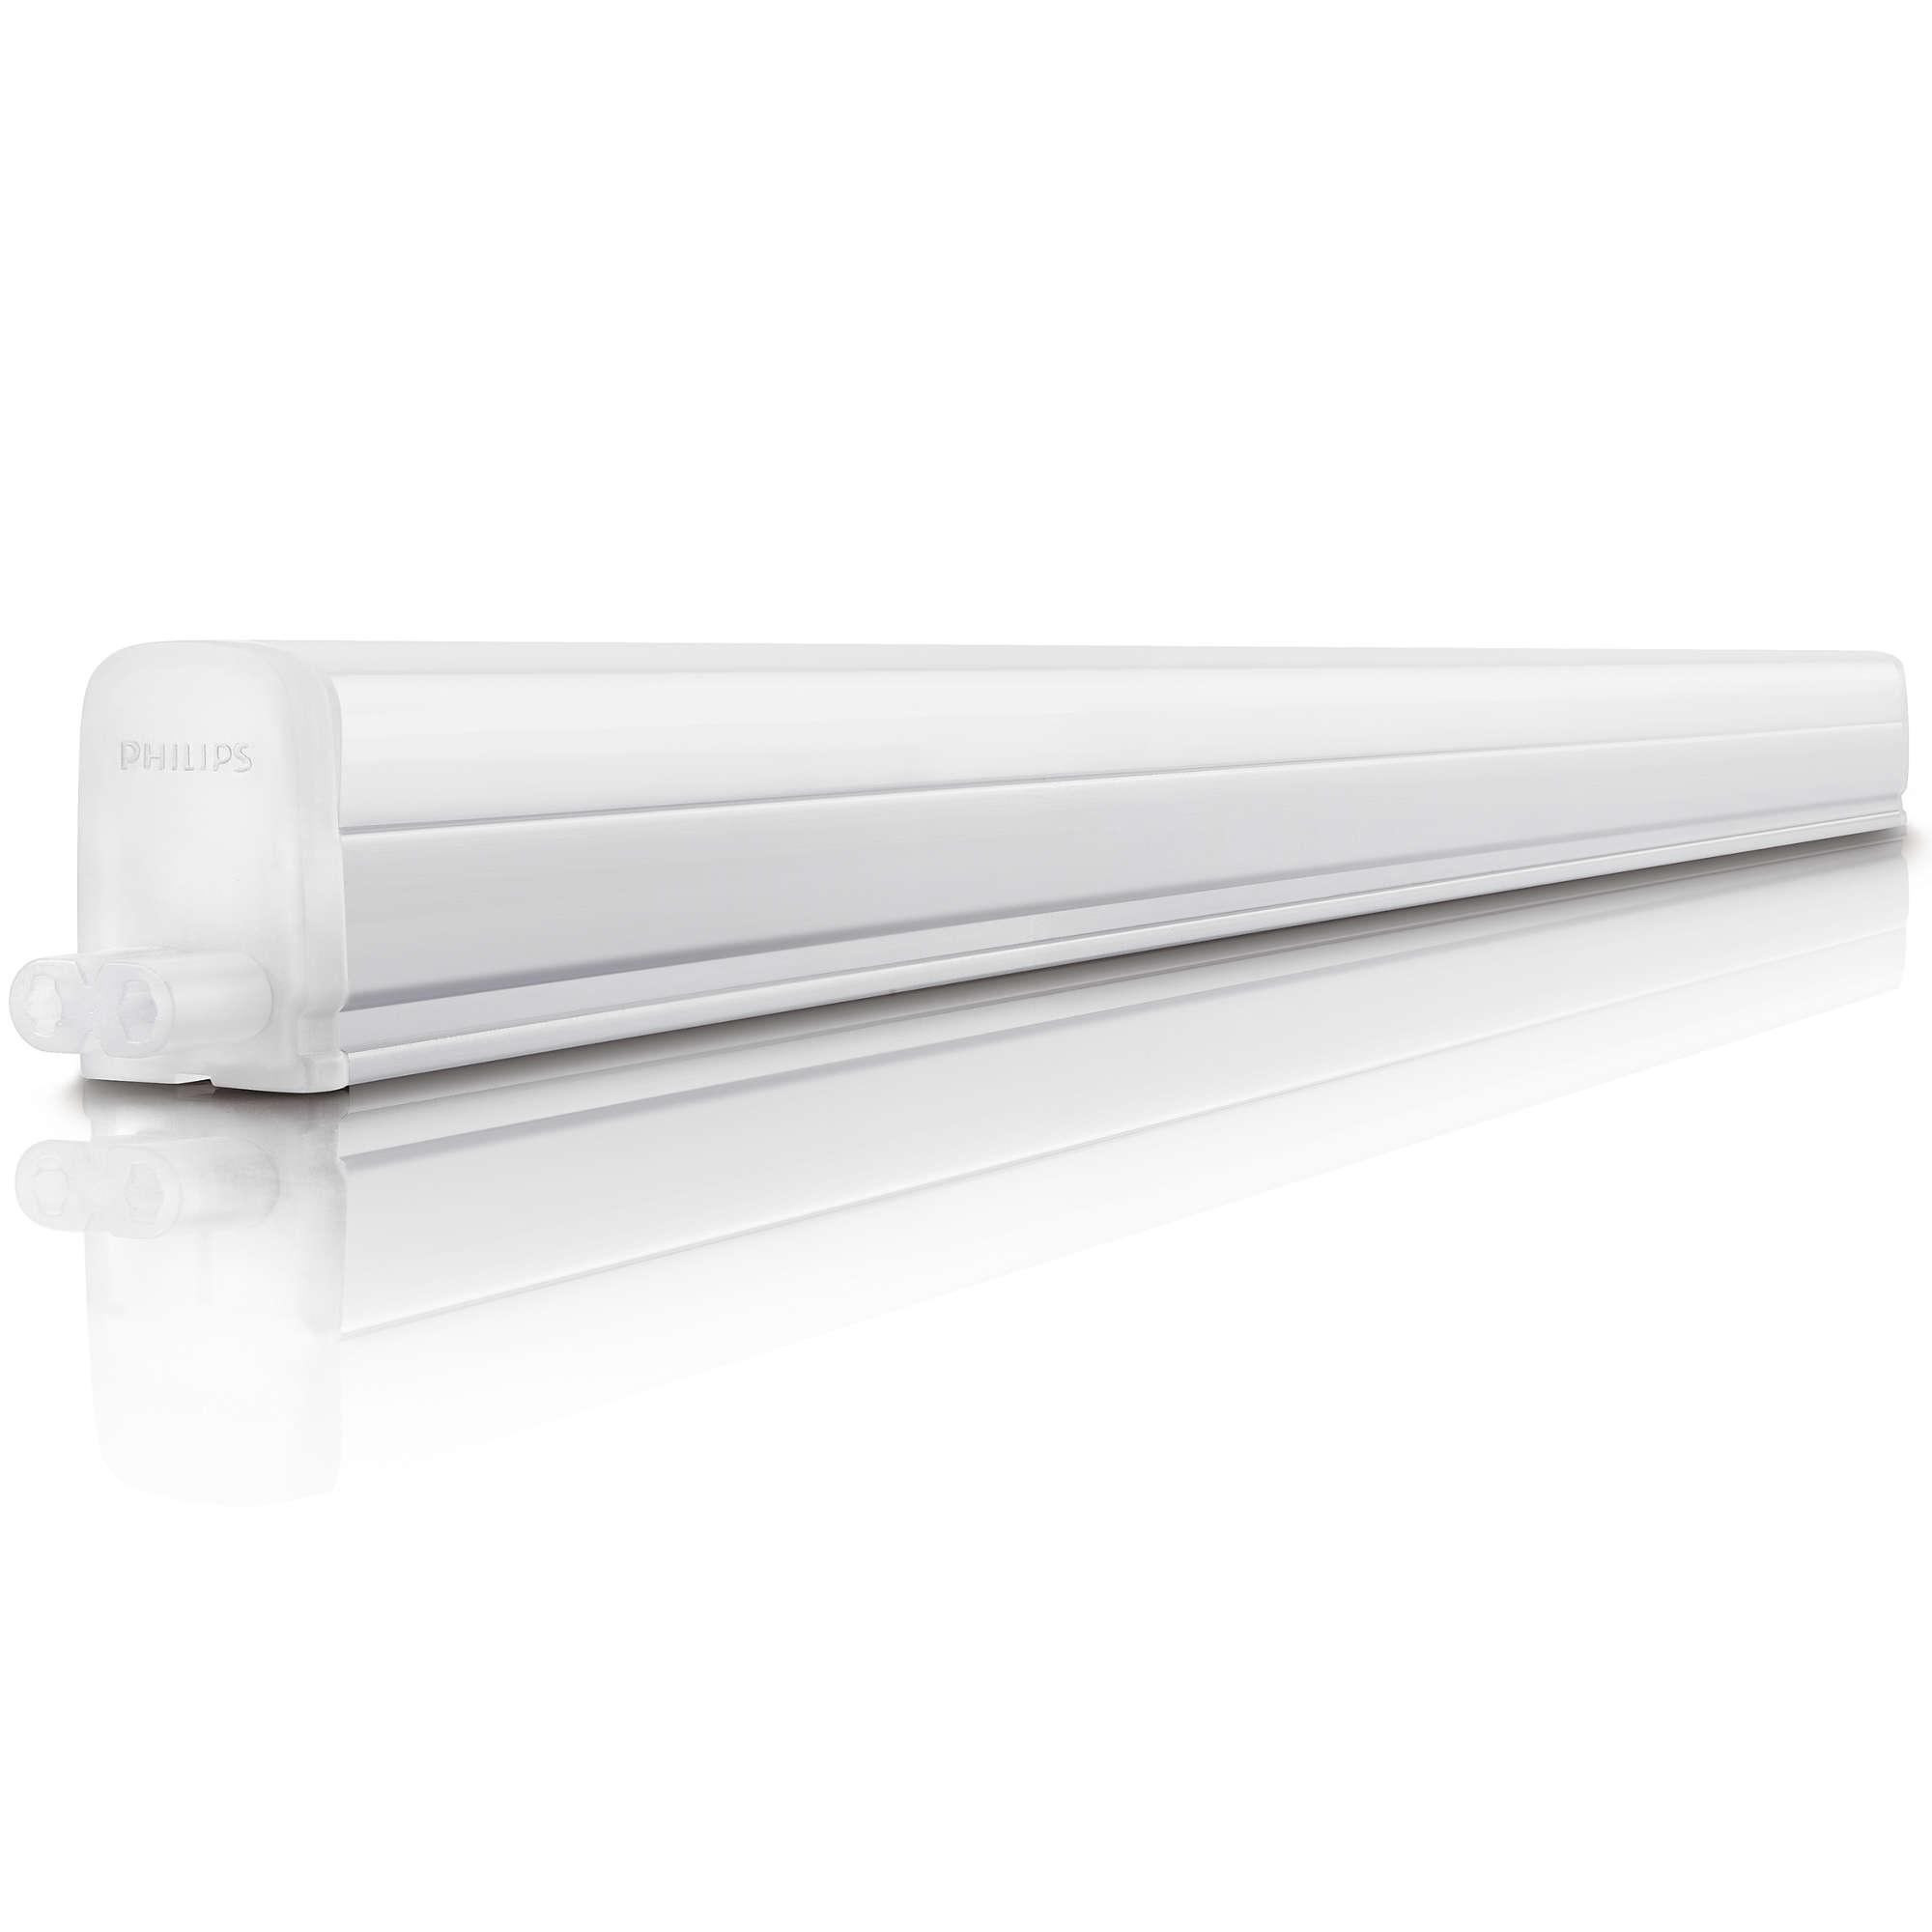 Bohlam PHILIPS TrunkLinea 7W wall lamp LED